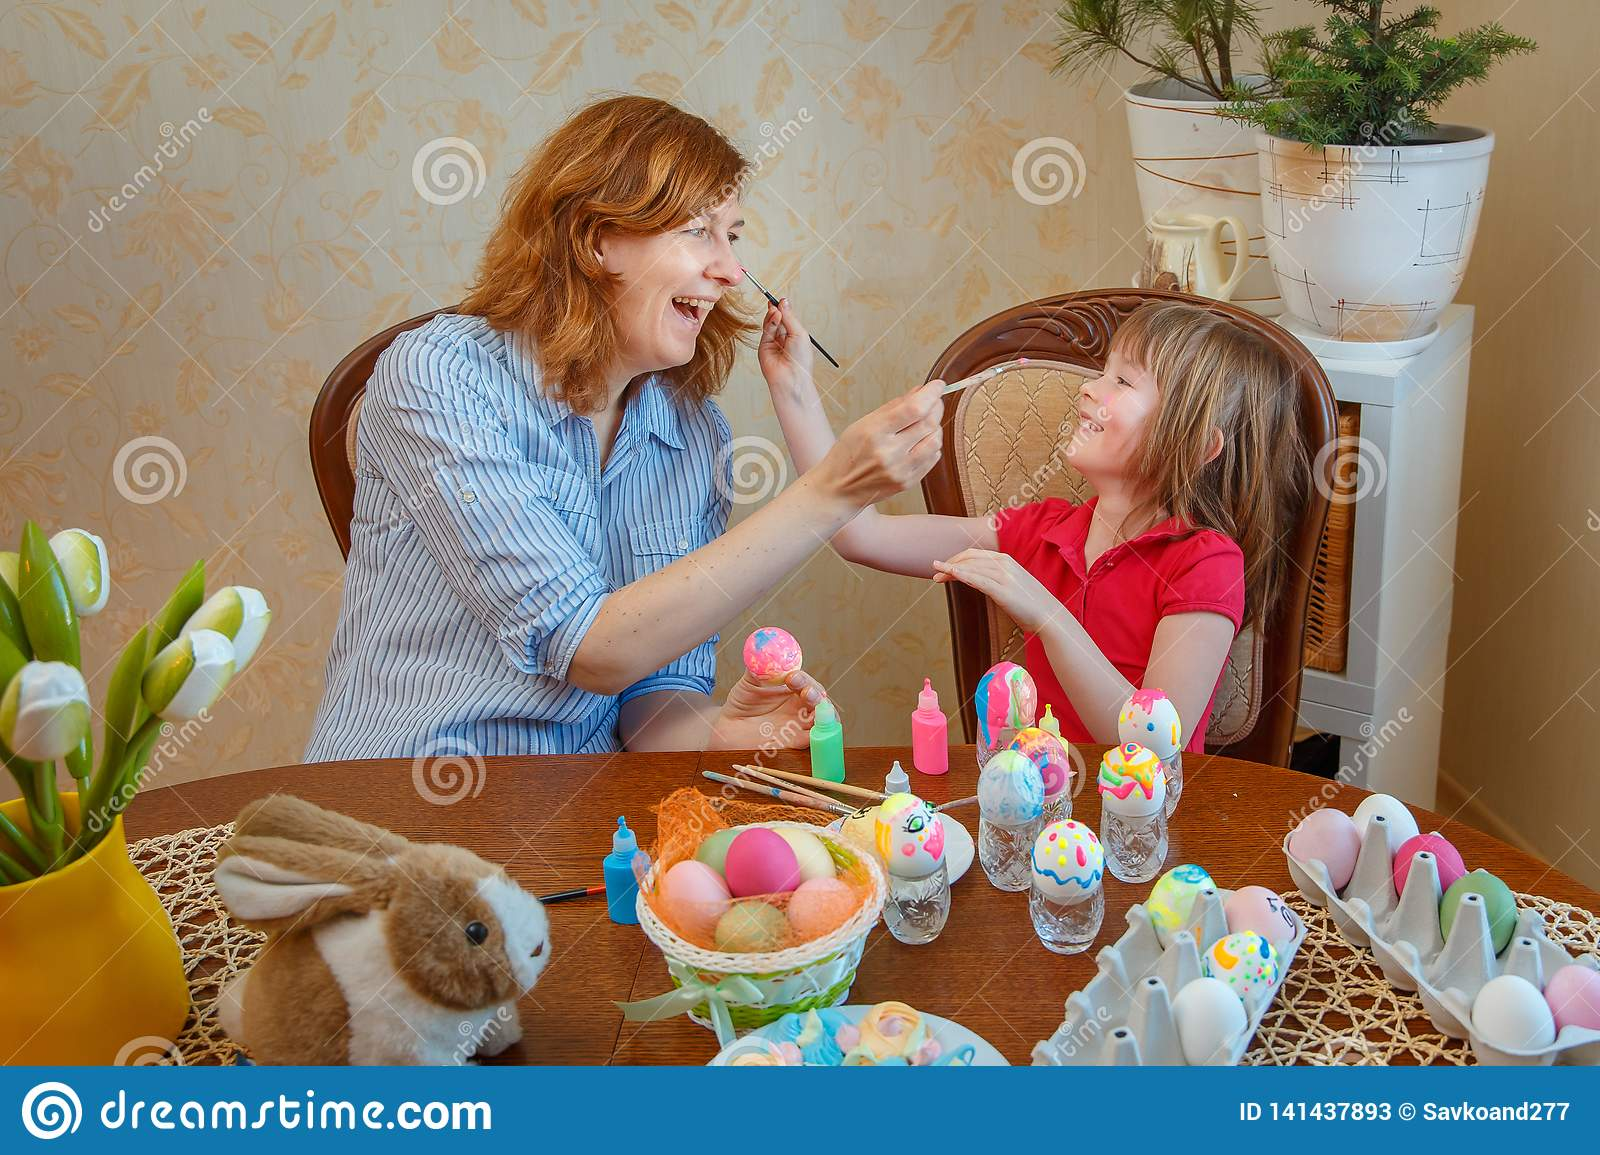 Mom and daughter have fun painting eggs for Easter